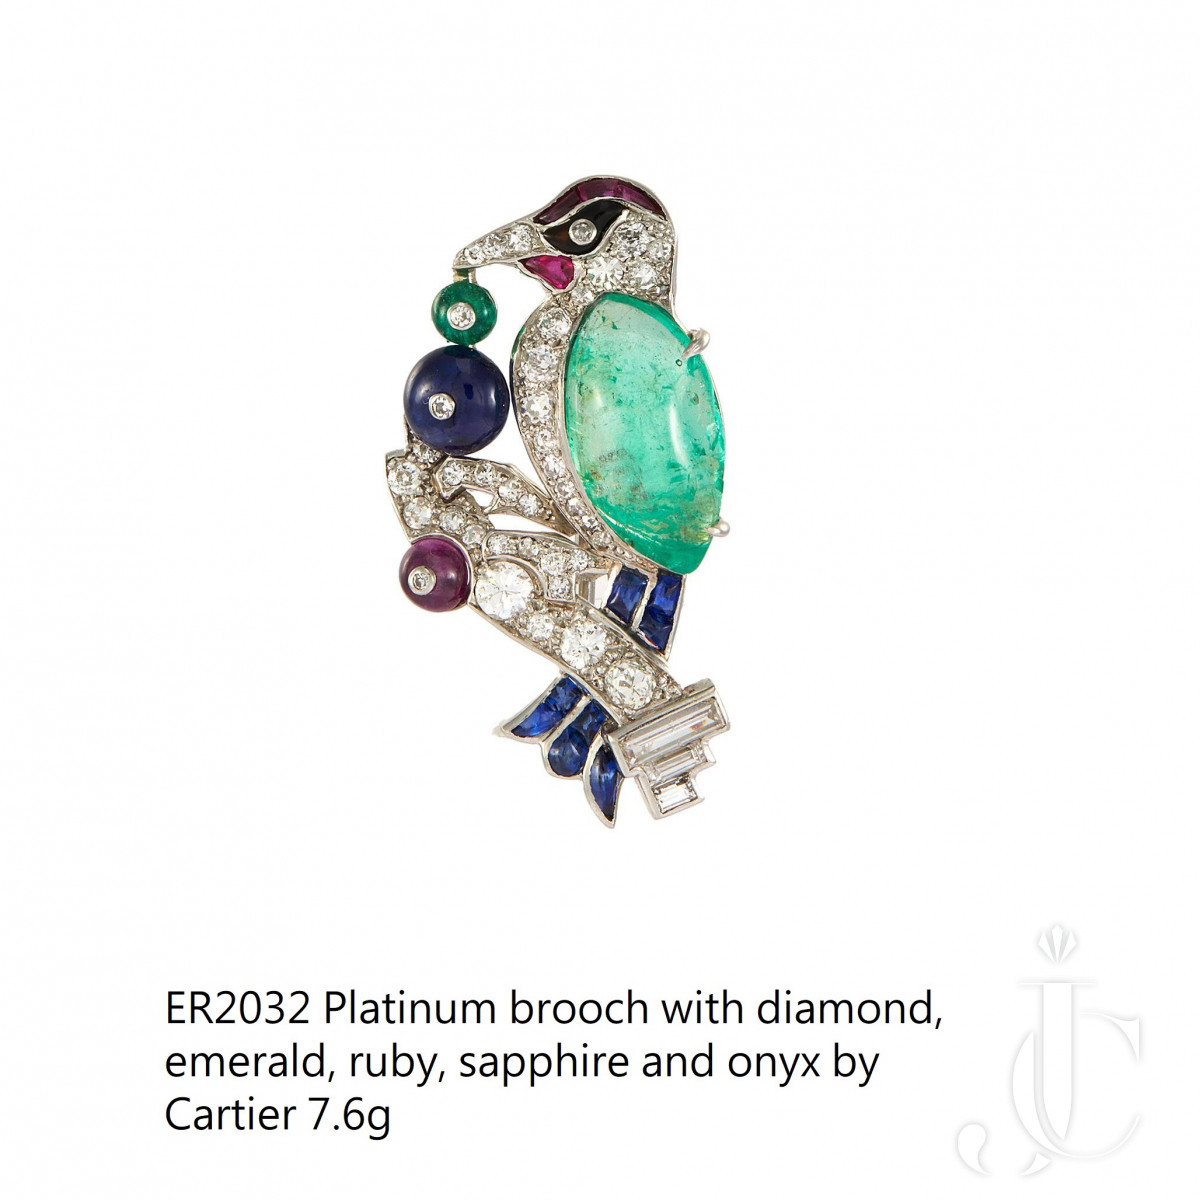 Platinum bird brooch with diamond, emeradl, ruby, sapphire and onyx by Cartier